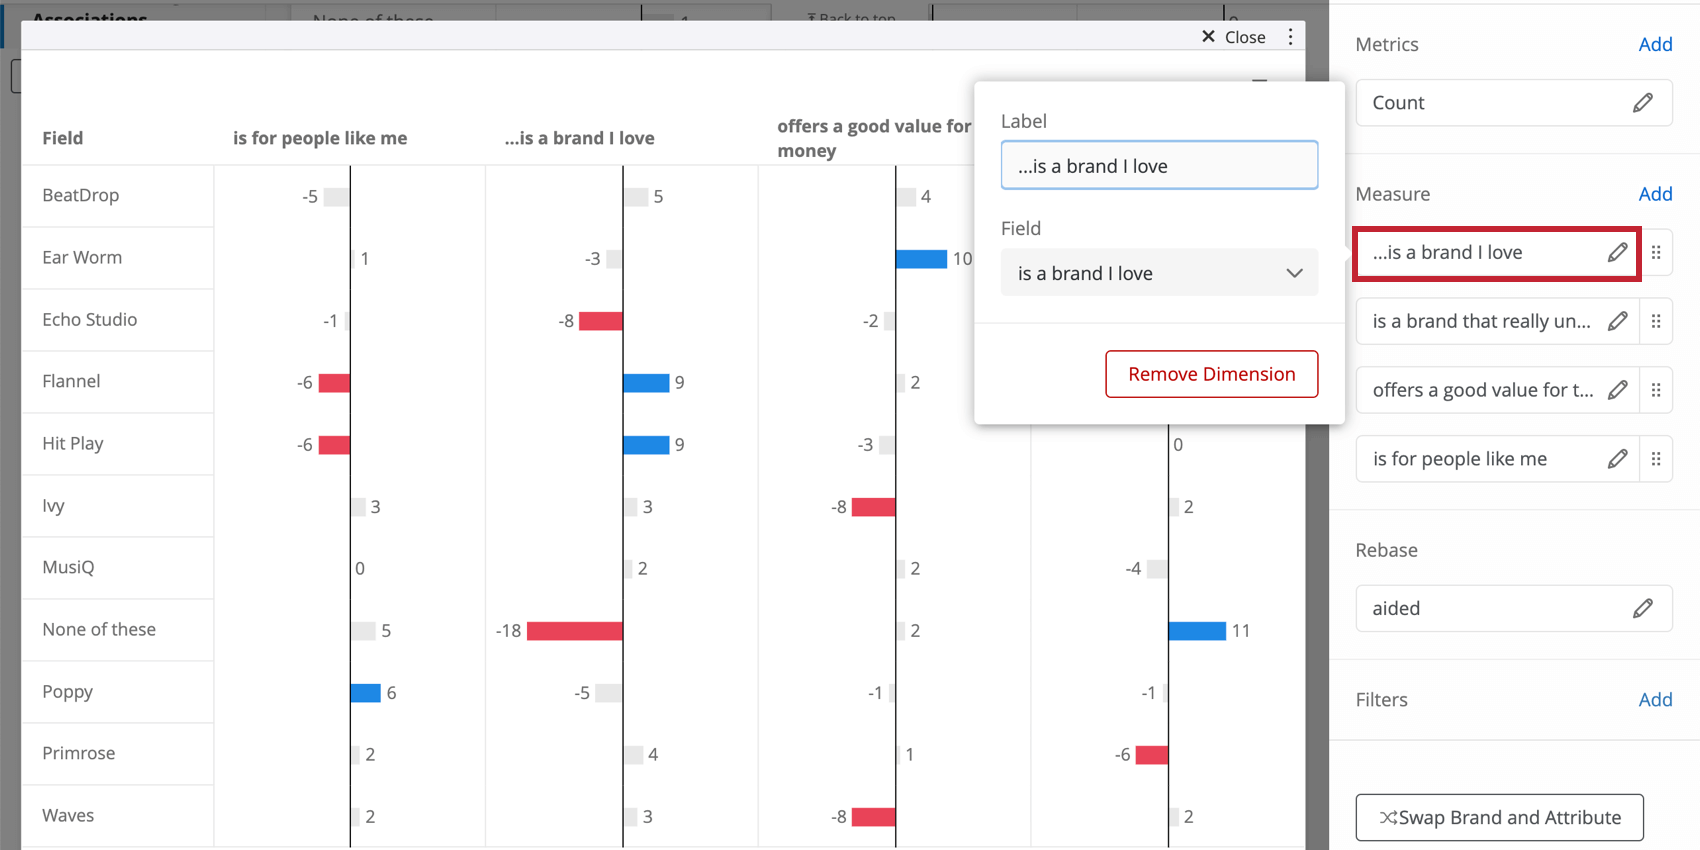 Clicking an imagery field opens a menu where you can adjust the label